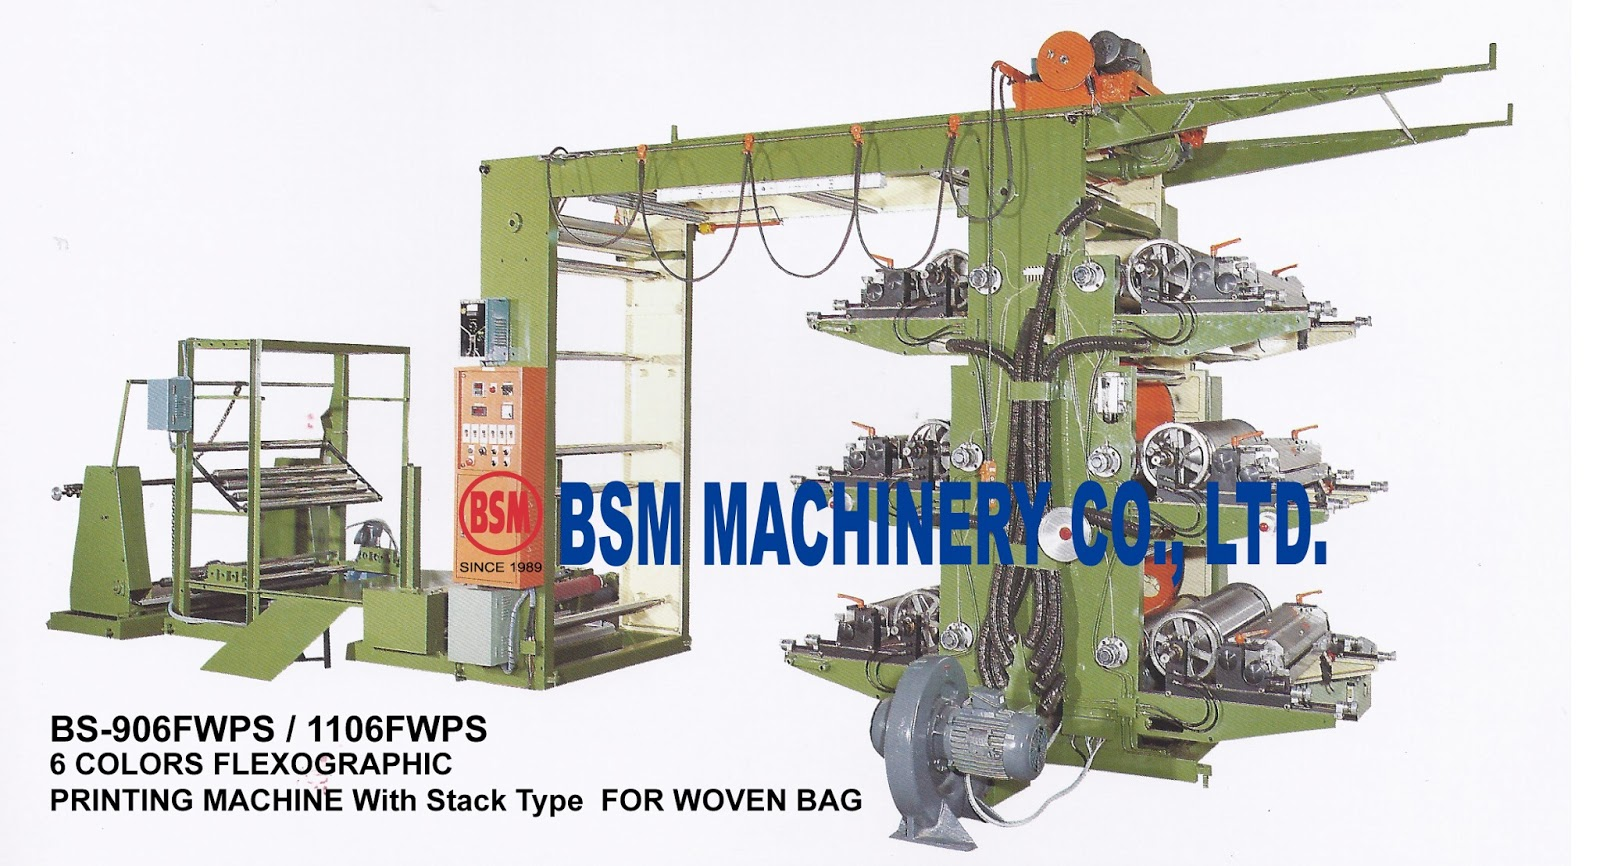 6 COLORS FLEXOGRAPHIC PRINTING MACHINE With Stack Type For WOVEN BAG